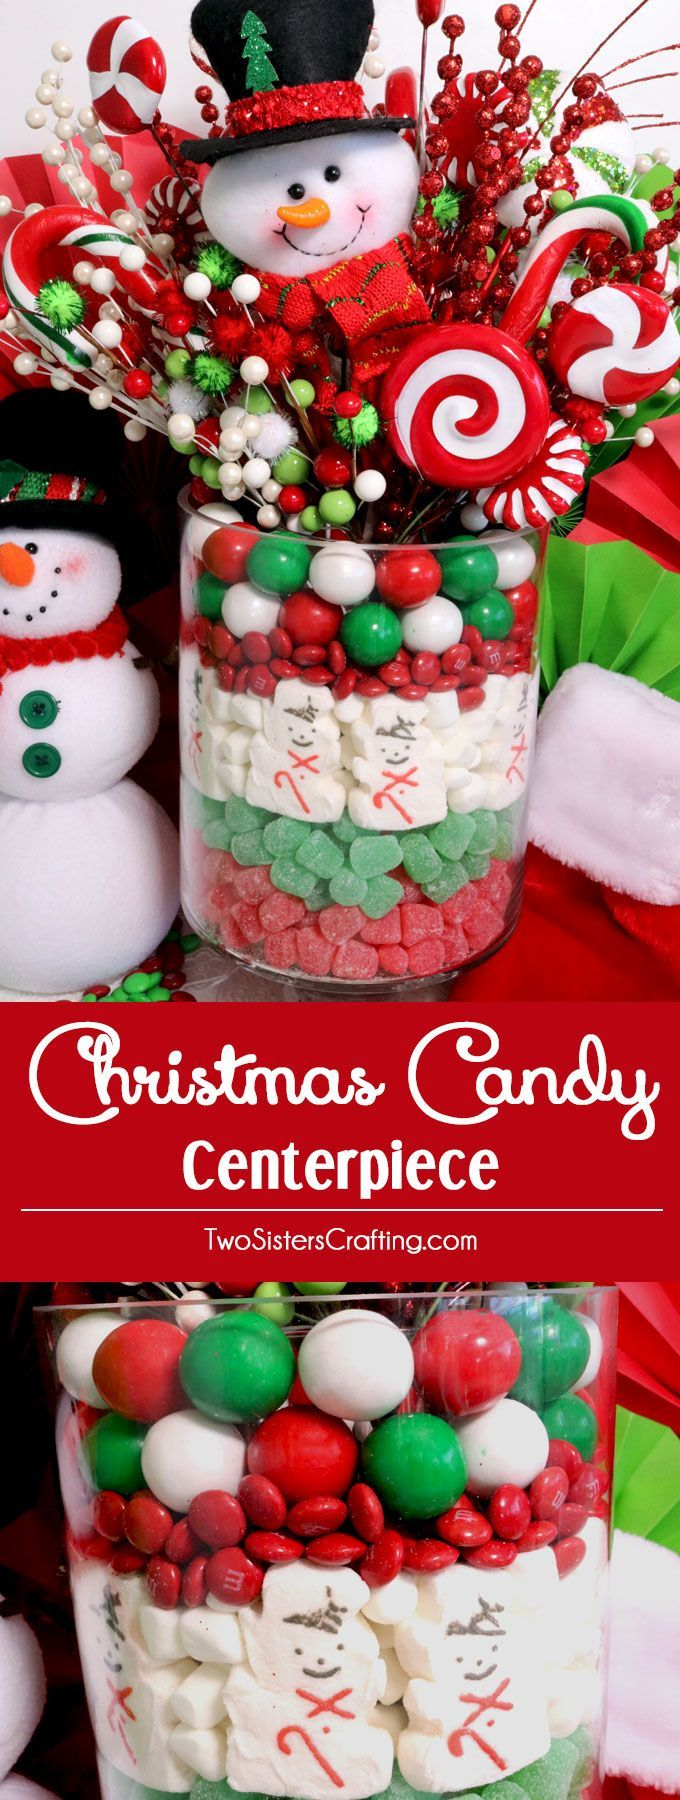 Christmas Candy Centerpiece - this will be everyone's favorite Christmas decoration. So fun and so easy to make. All you need are Christmas Candy, a vase and some Christmas decorations or flowers to make this cute DIY Christmas Craft. Pin this Christmas Centerpiece and follow us for more fun Christmas Decoration ideas. #ChristmasCenterpiece #ChristmasDecoration #ChristmasCrafts